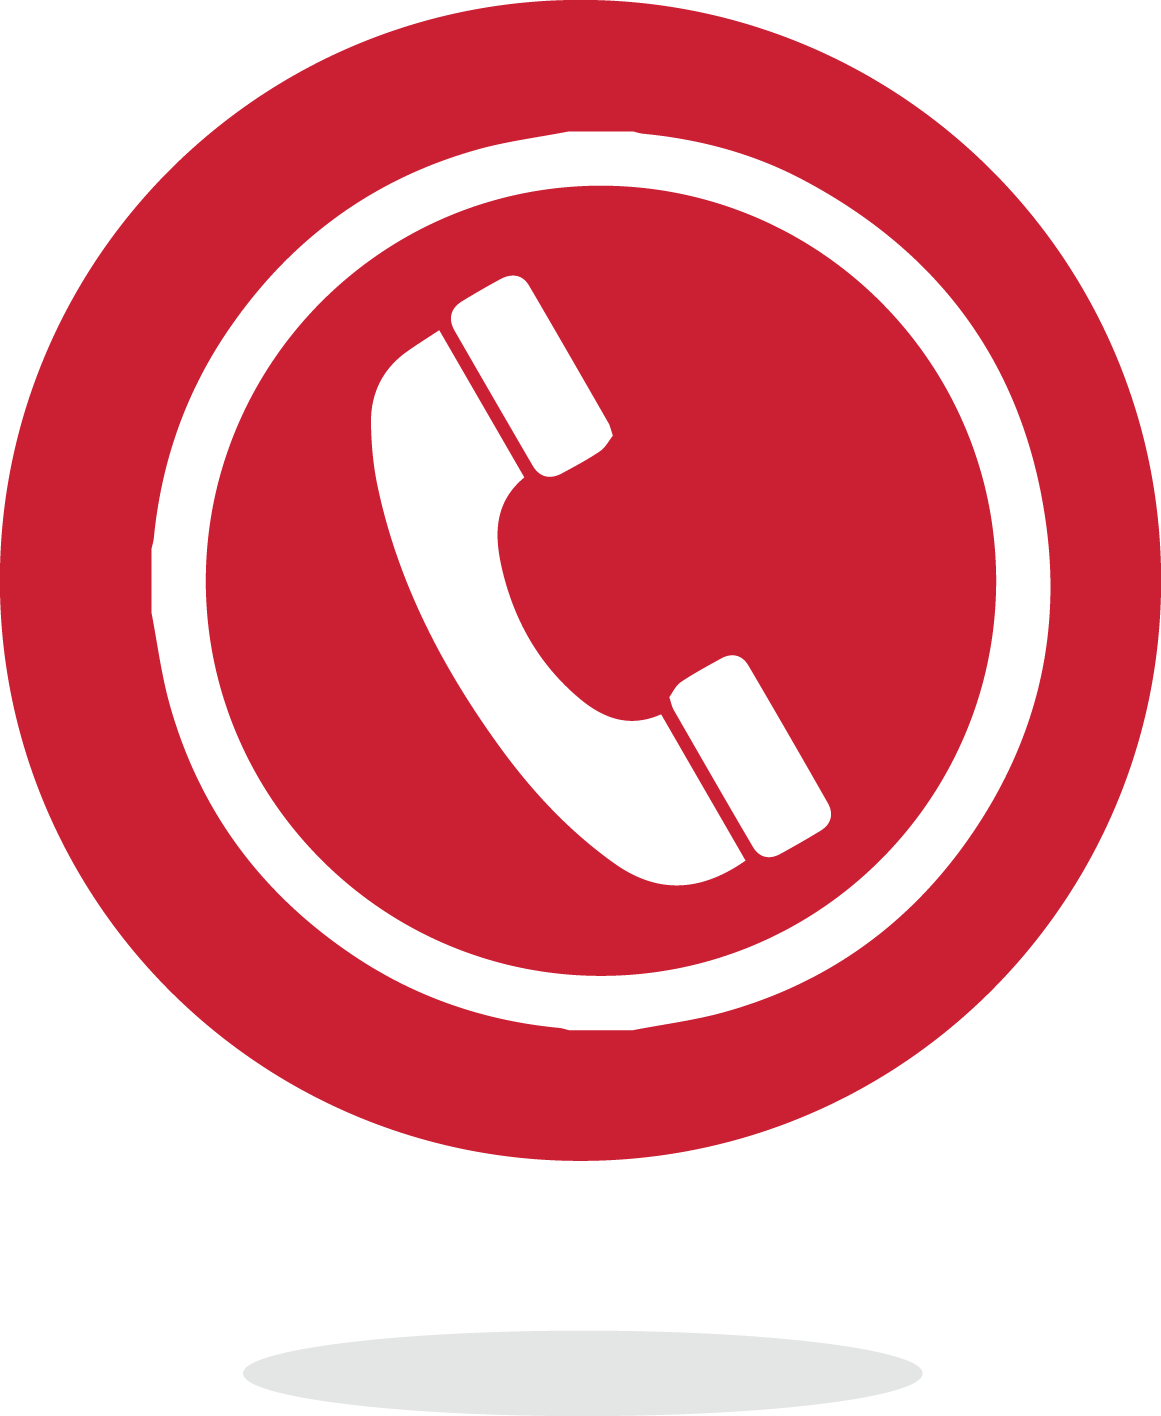 emergency-red-phone-icon 179102